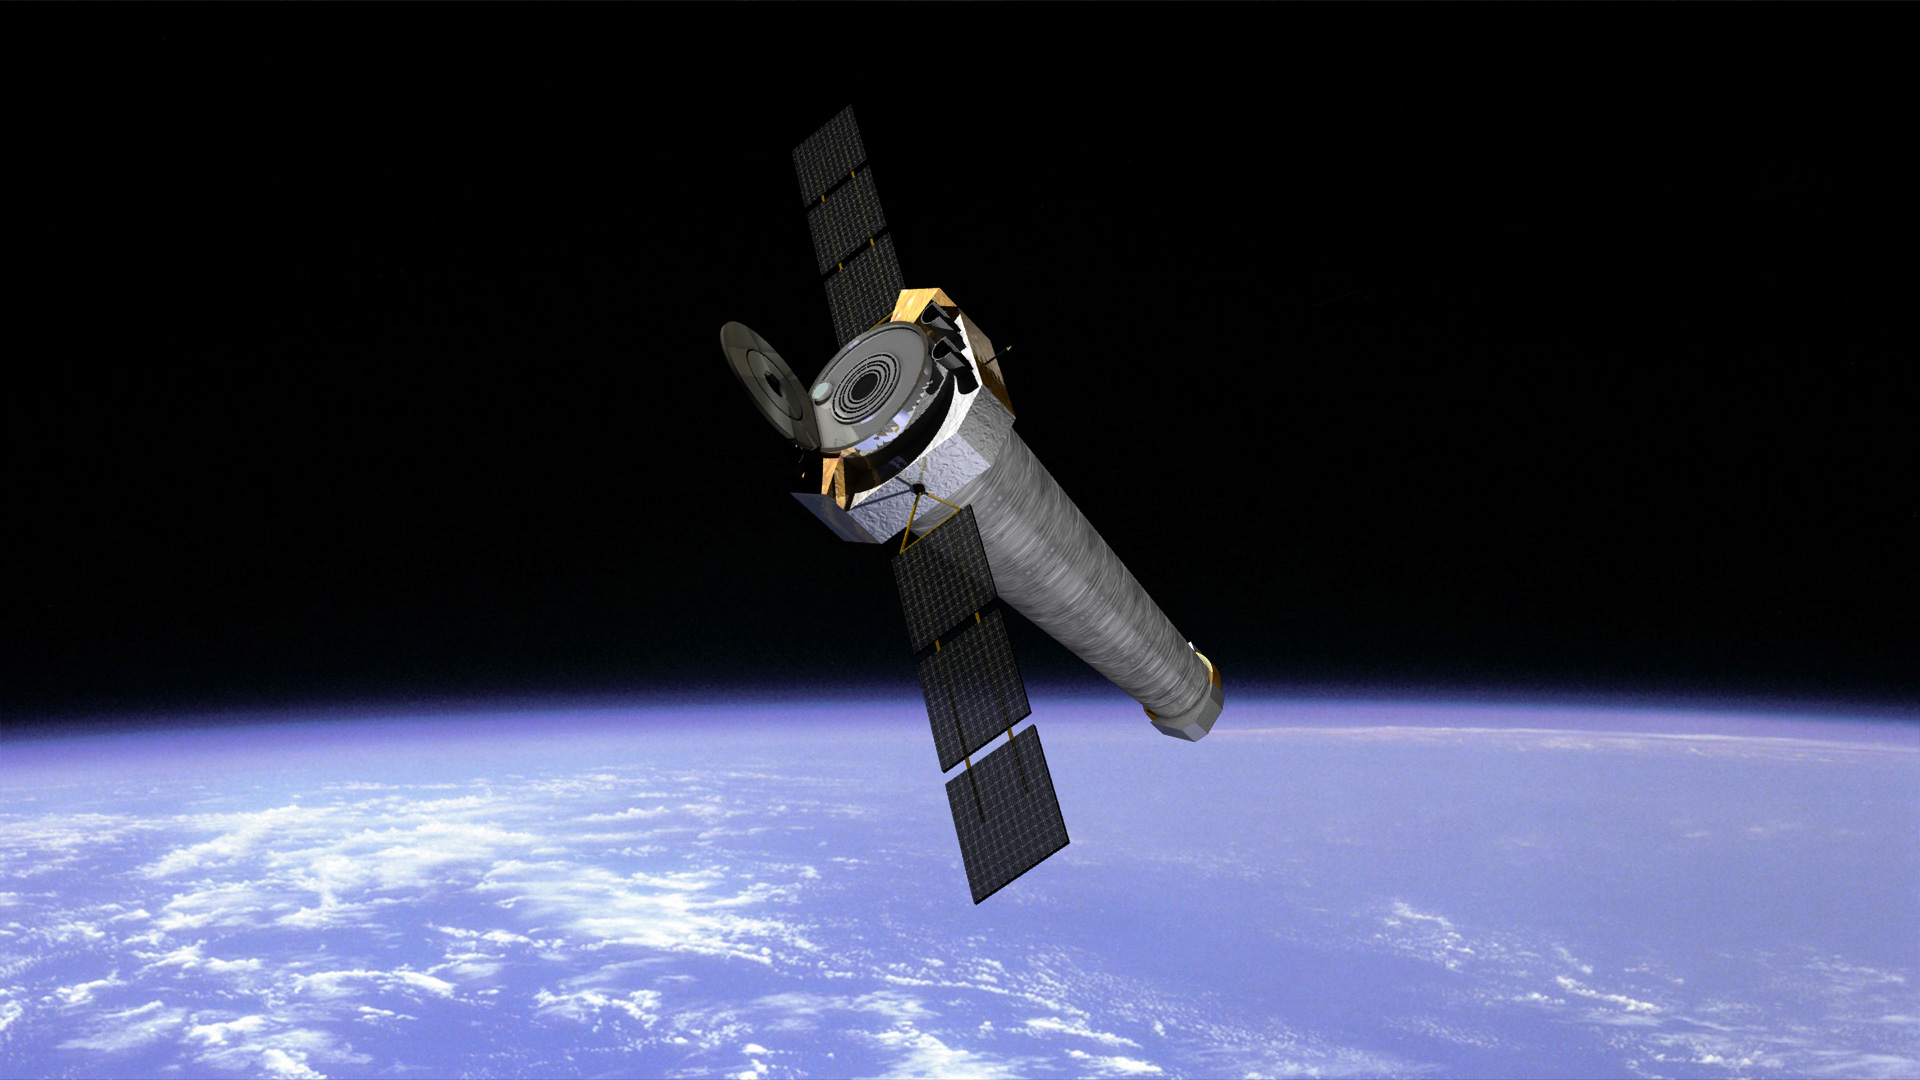 Chandra above Earth